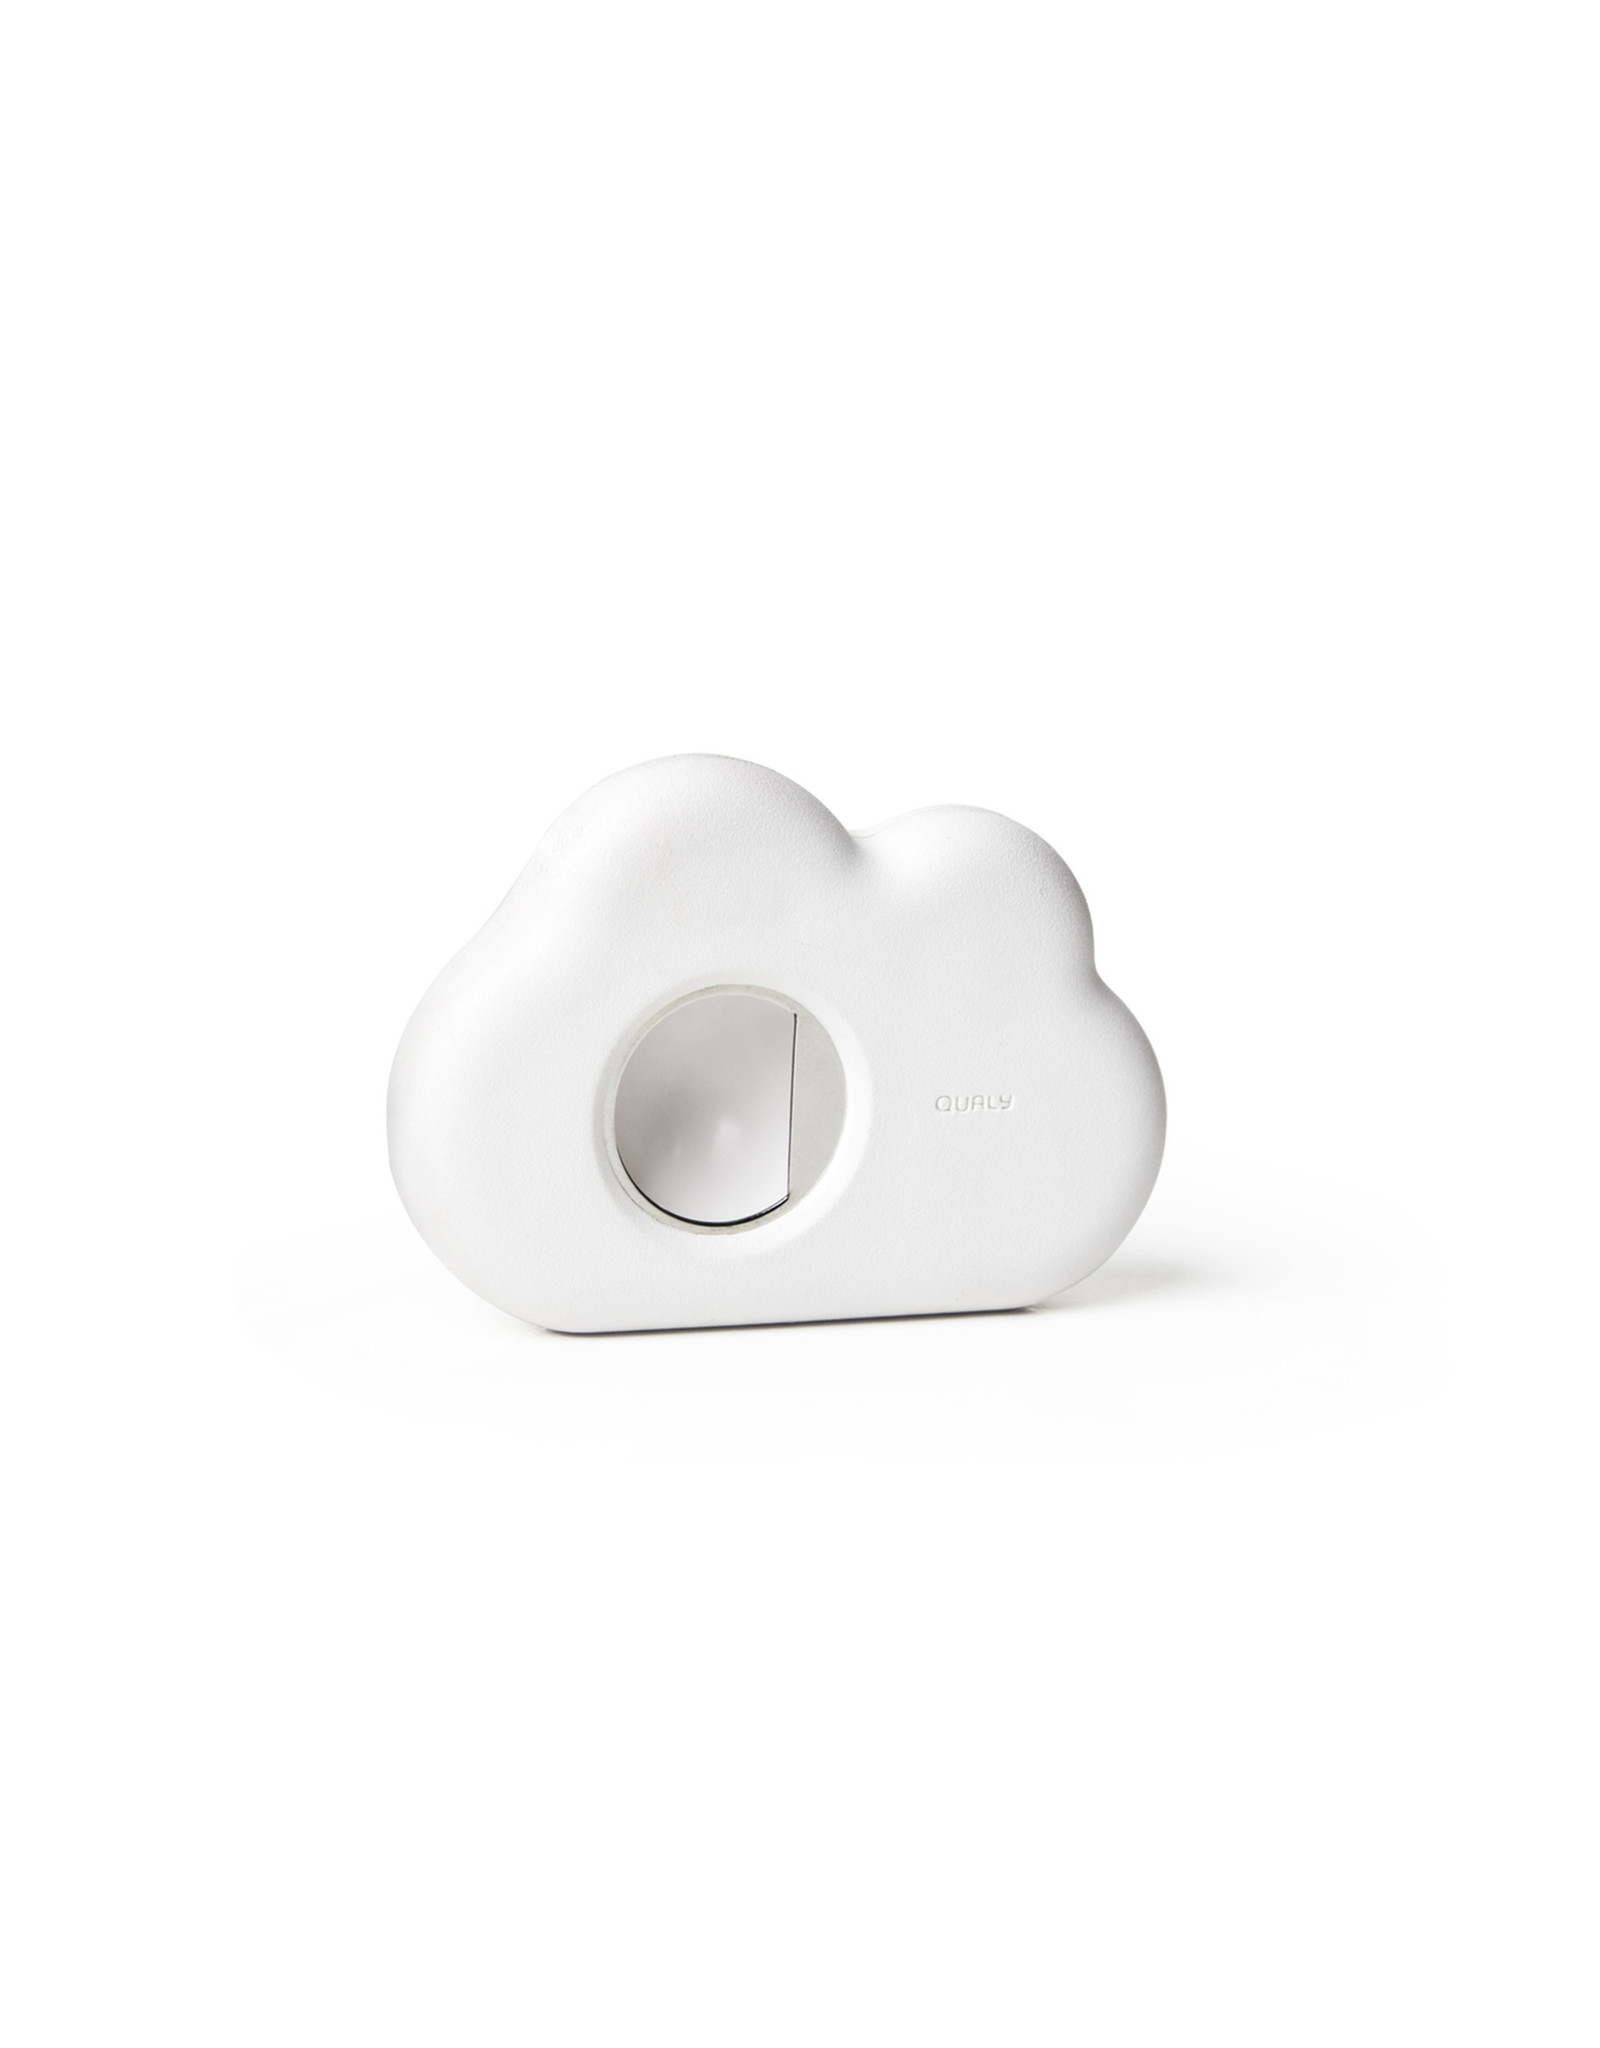 Qualy Cloud Bottle Opener